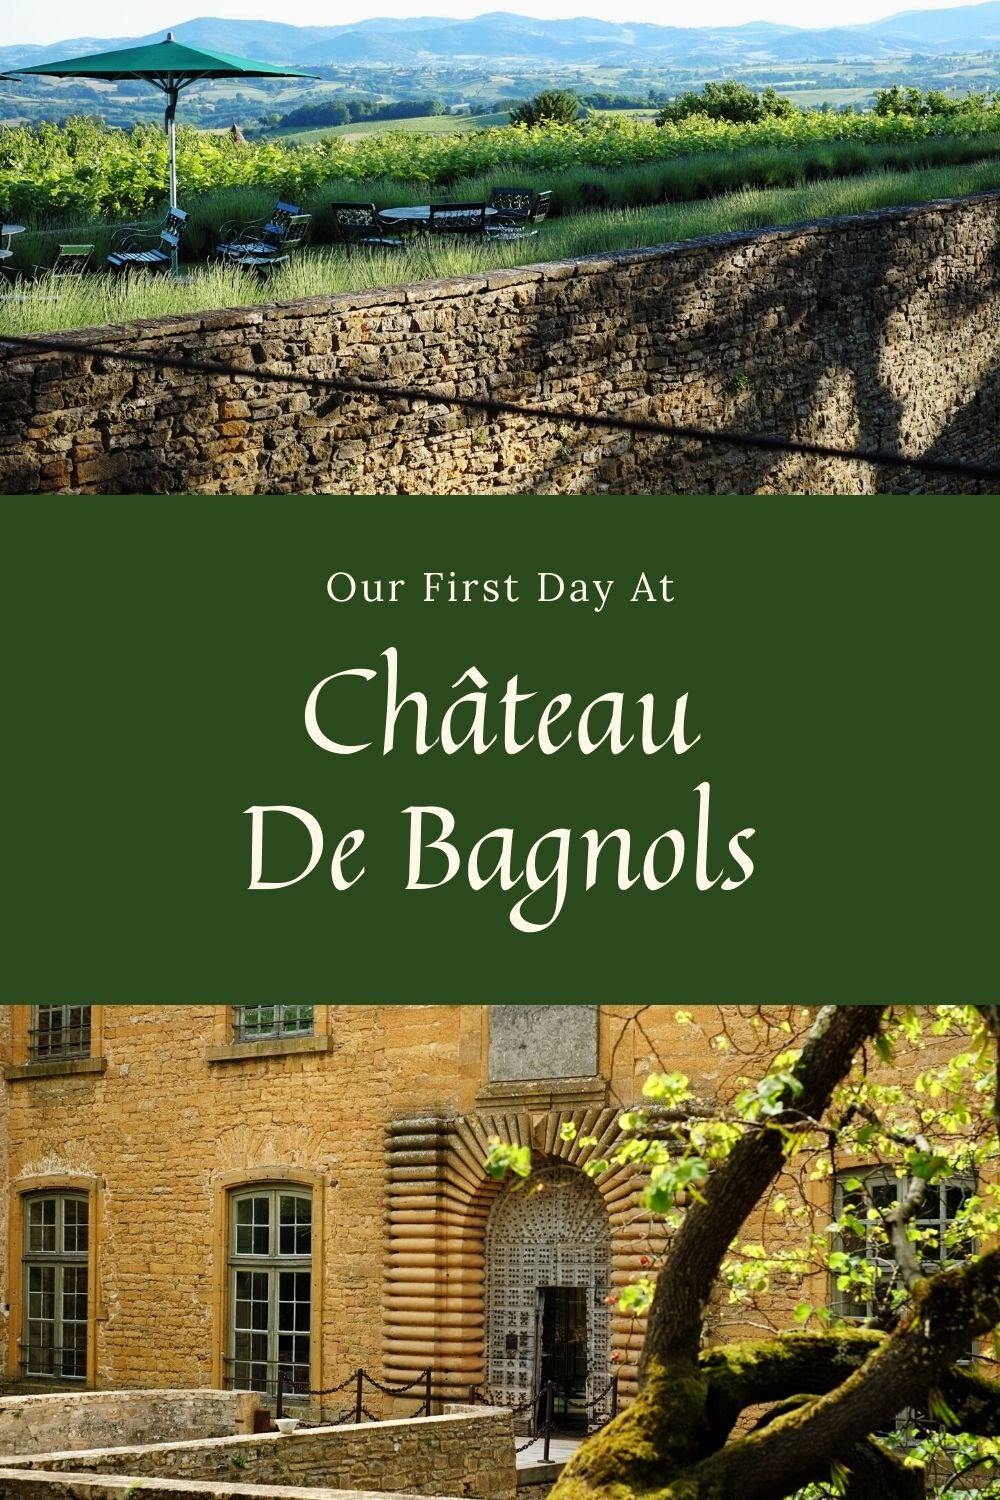 Beaujolais region in France travel tips and Château de Bagnols hotel reviews by White Caviar Life.